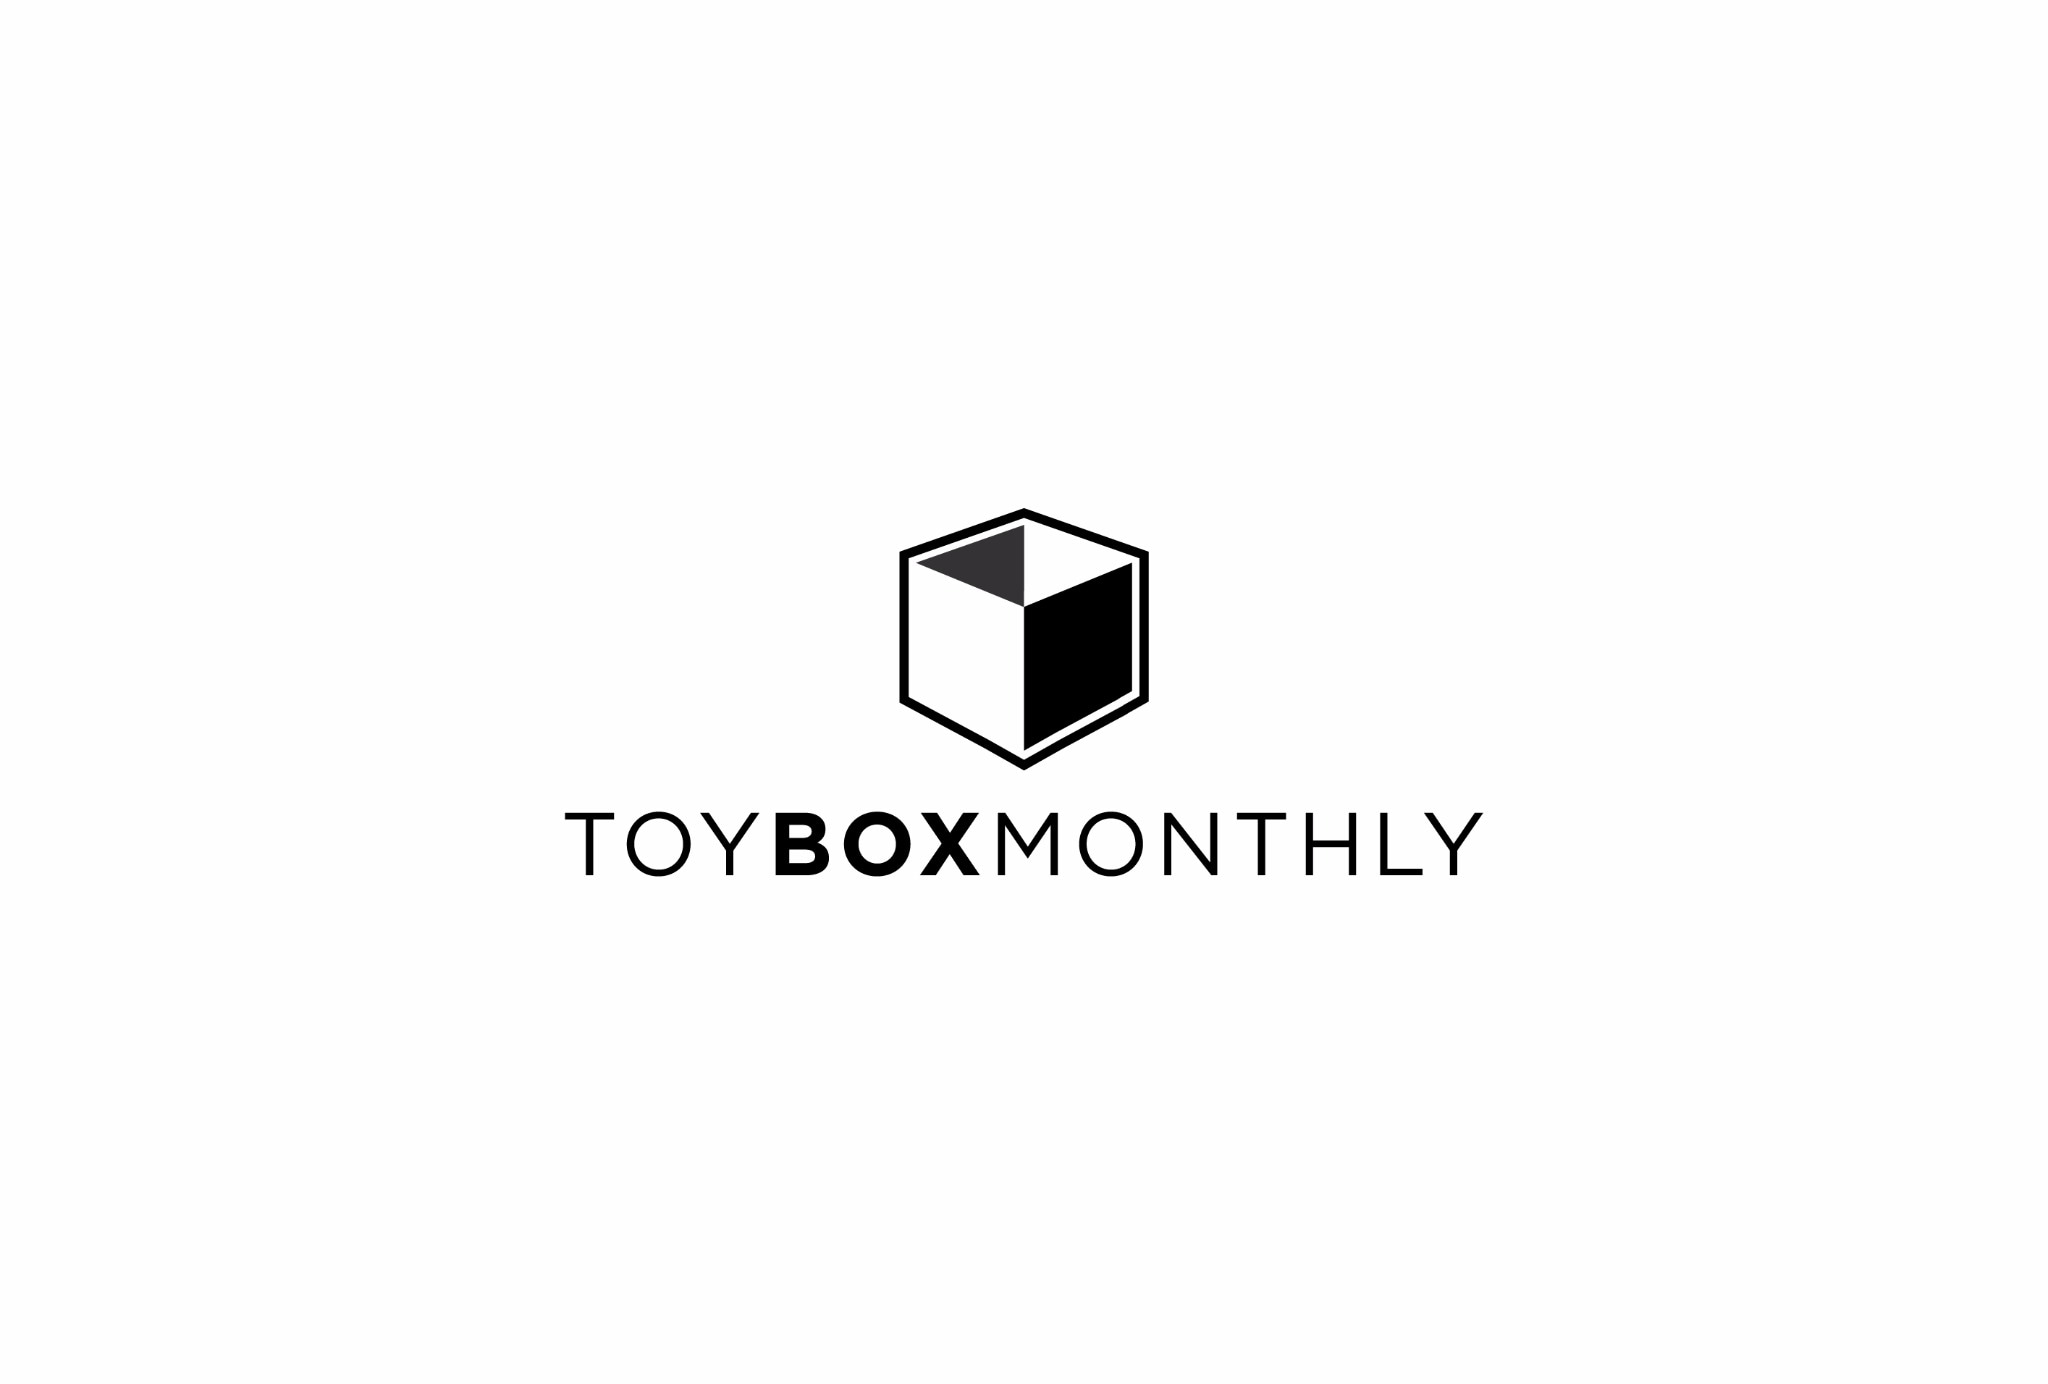 Toy Box Monthly promo codes